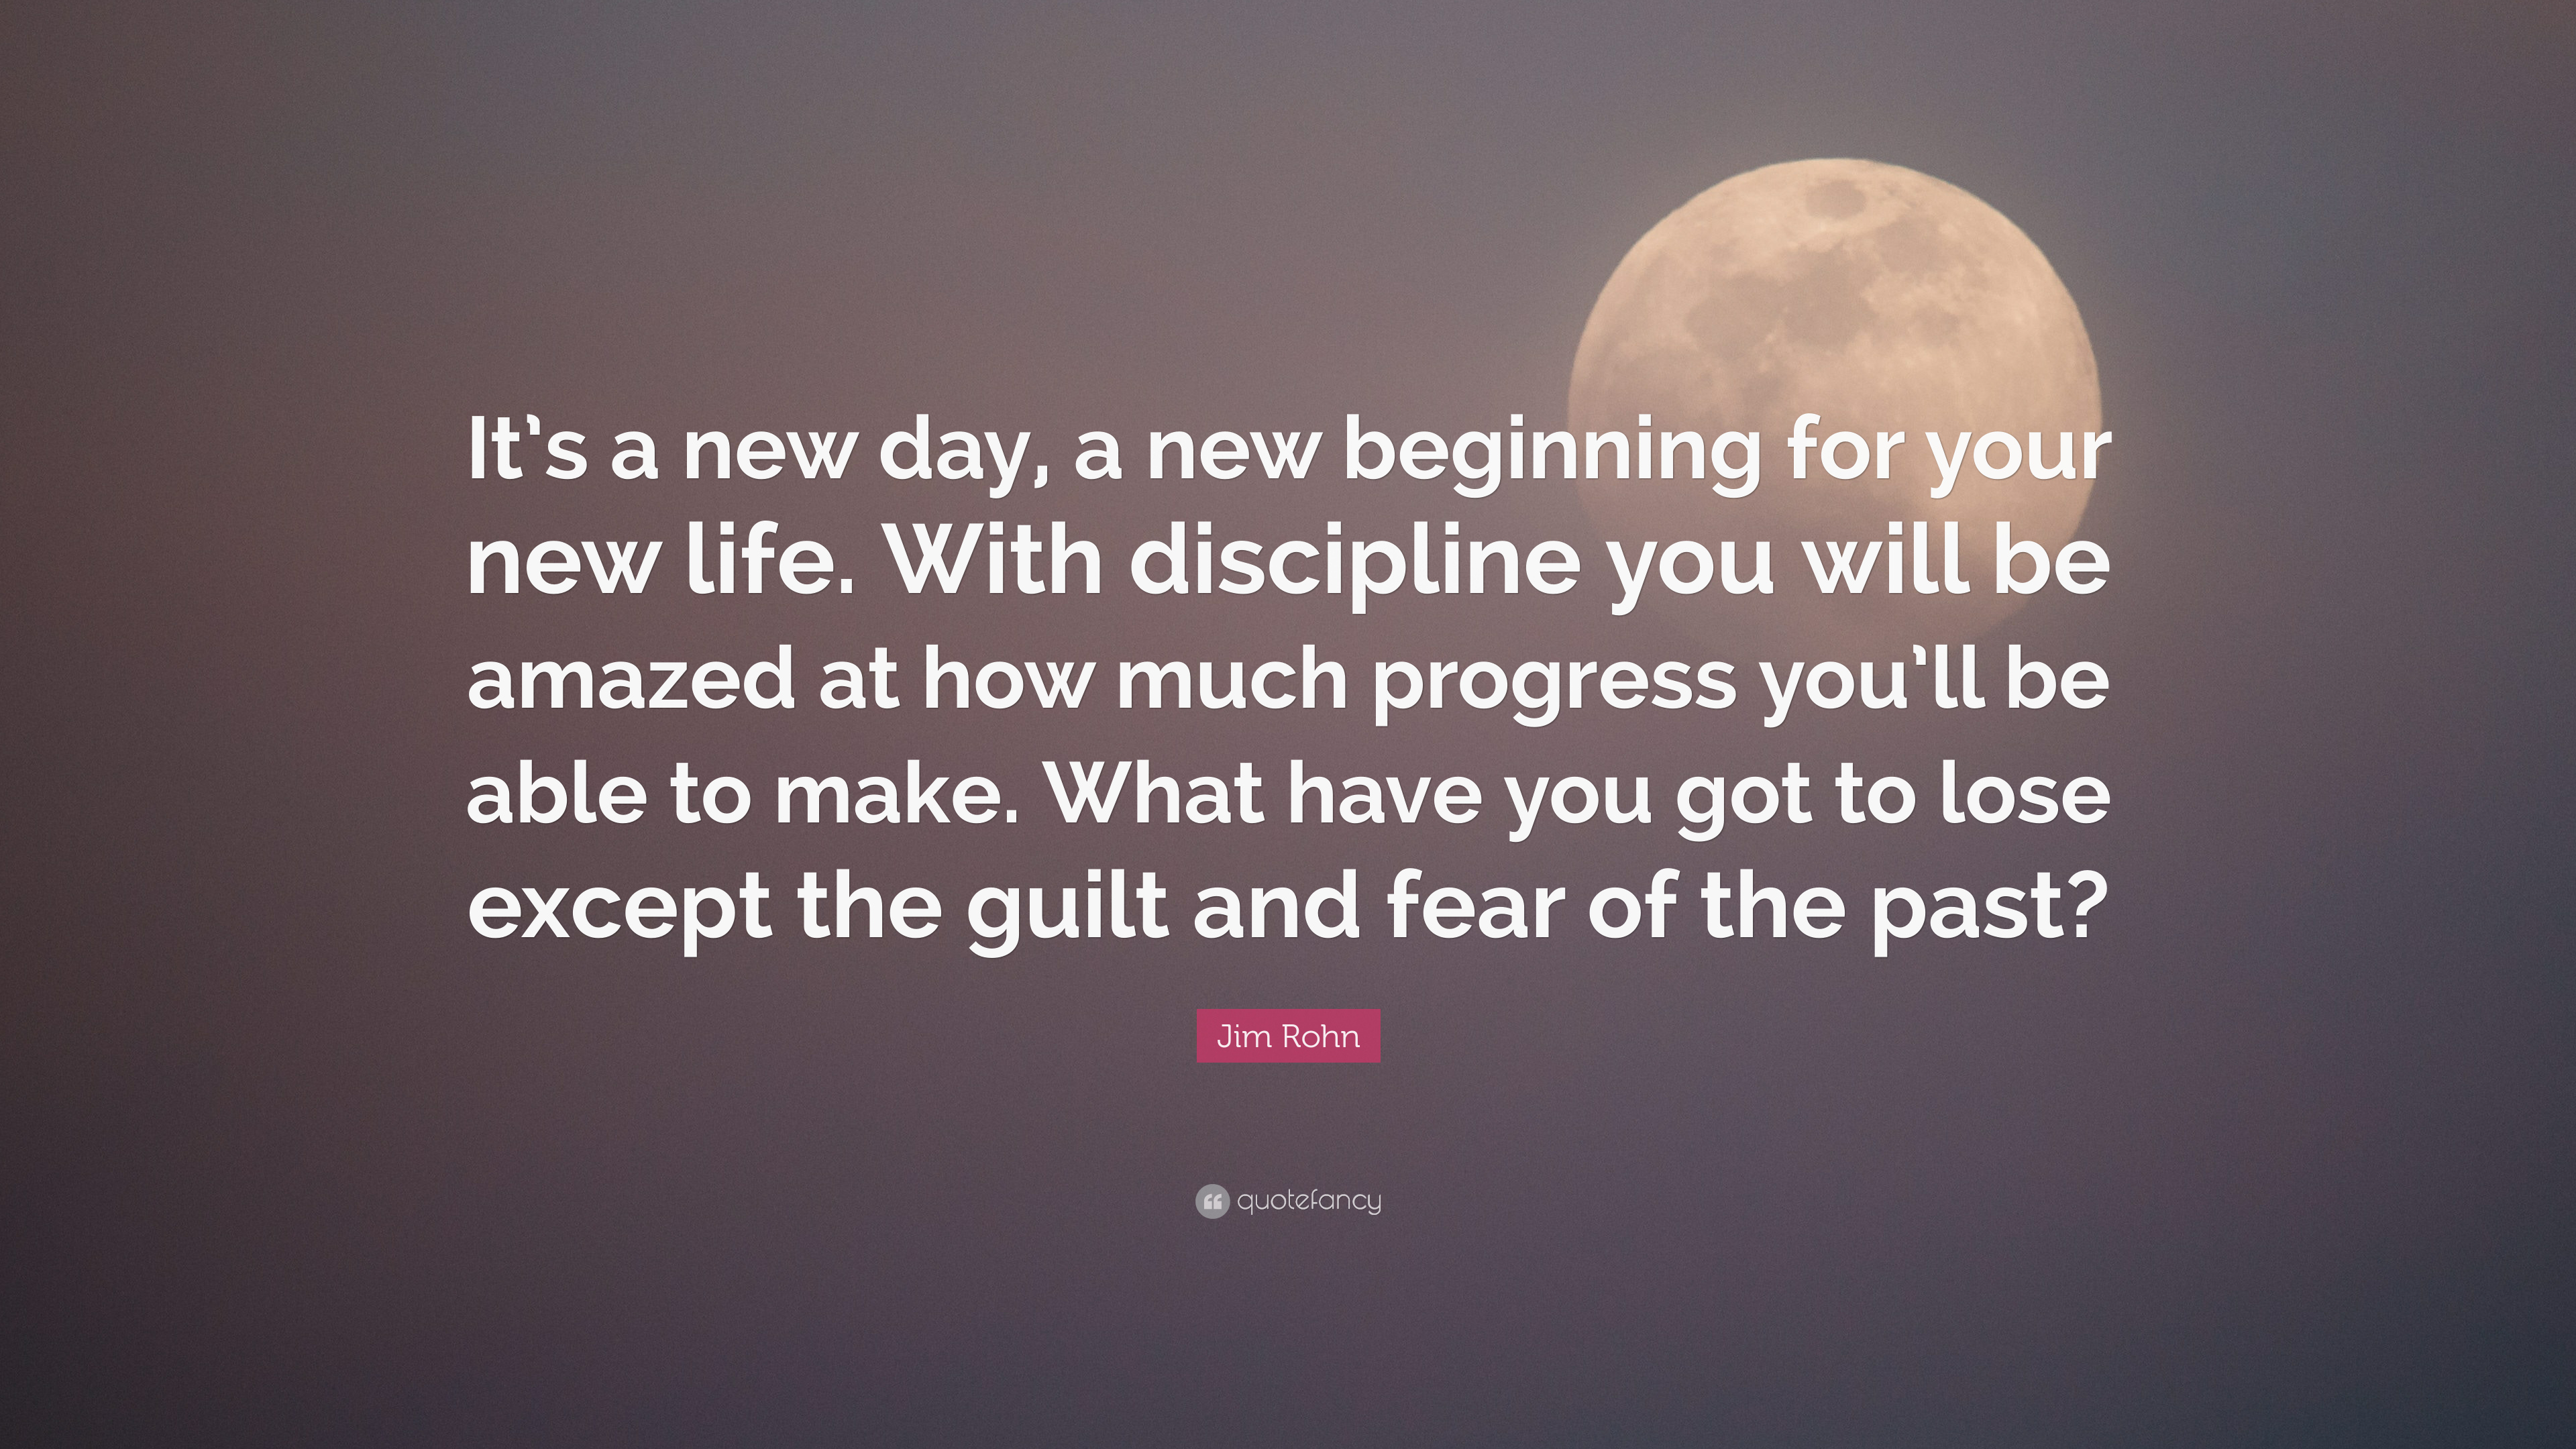 Quotes About New Life Quotes About Beginning A New Life